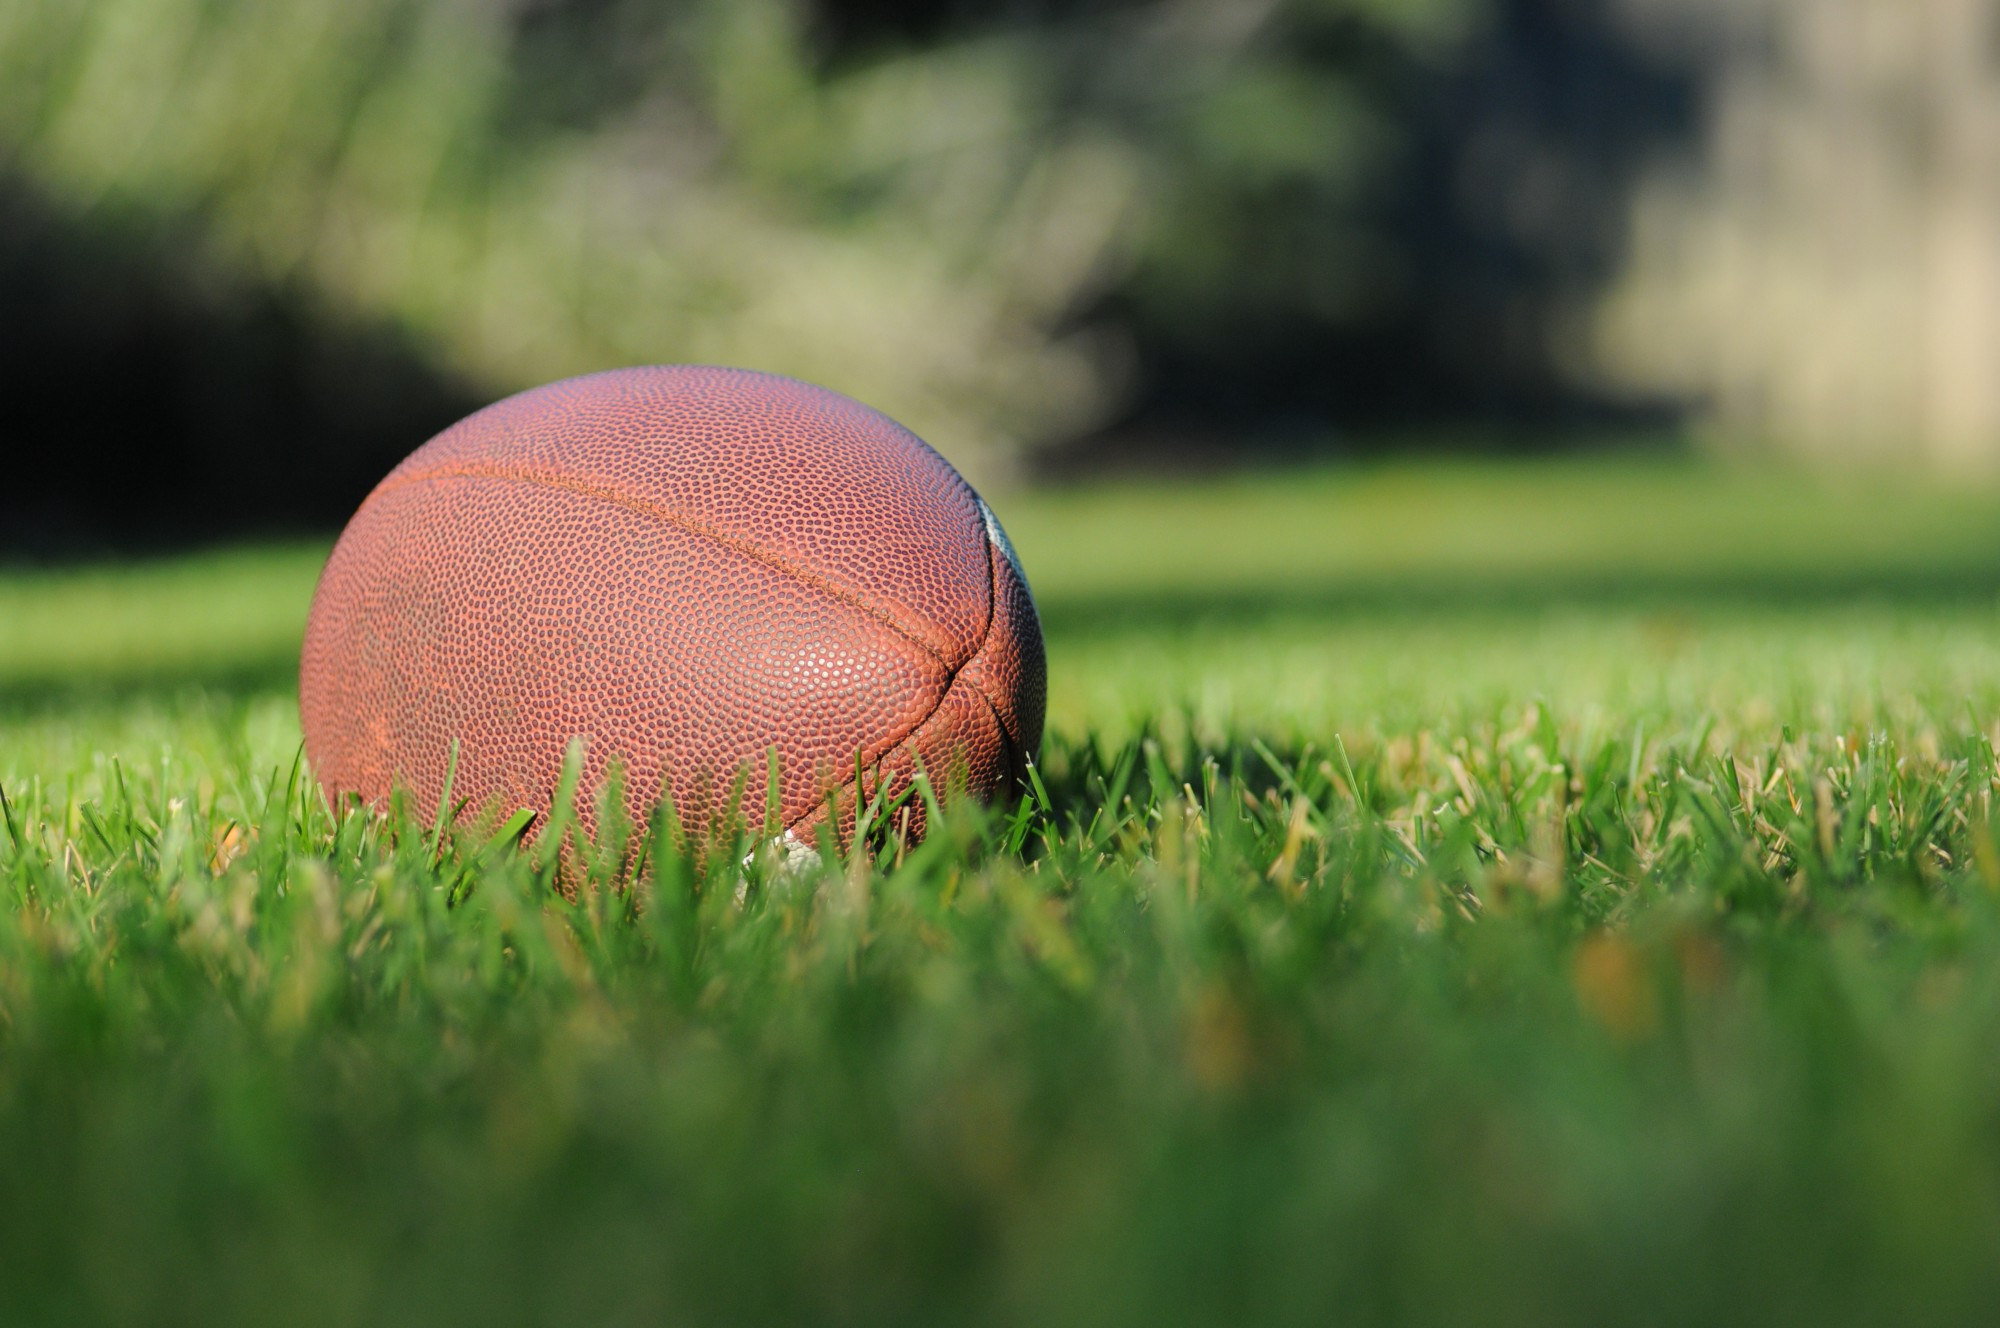 Photo of a football in the grass by Ben Hershey on Unsplash